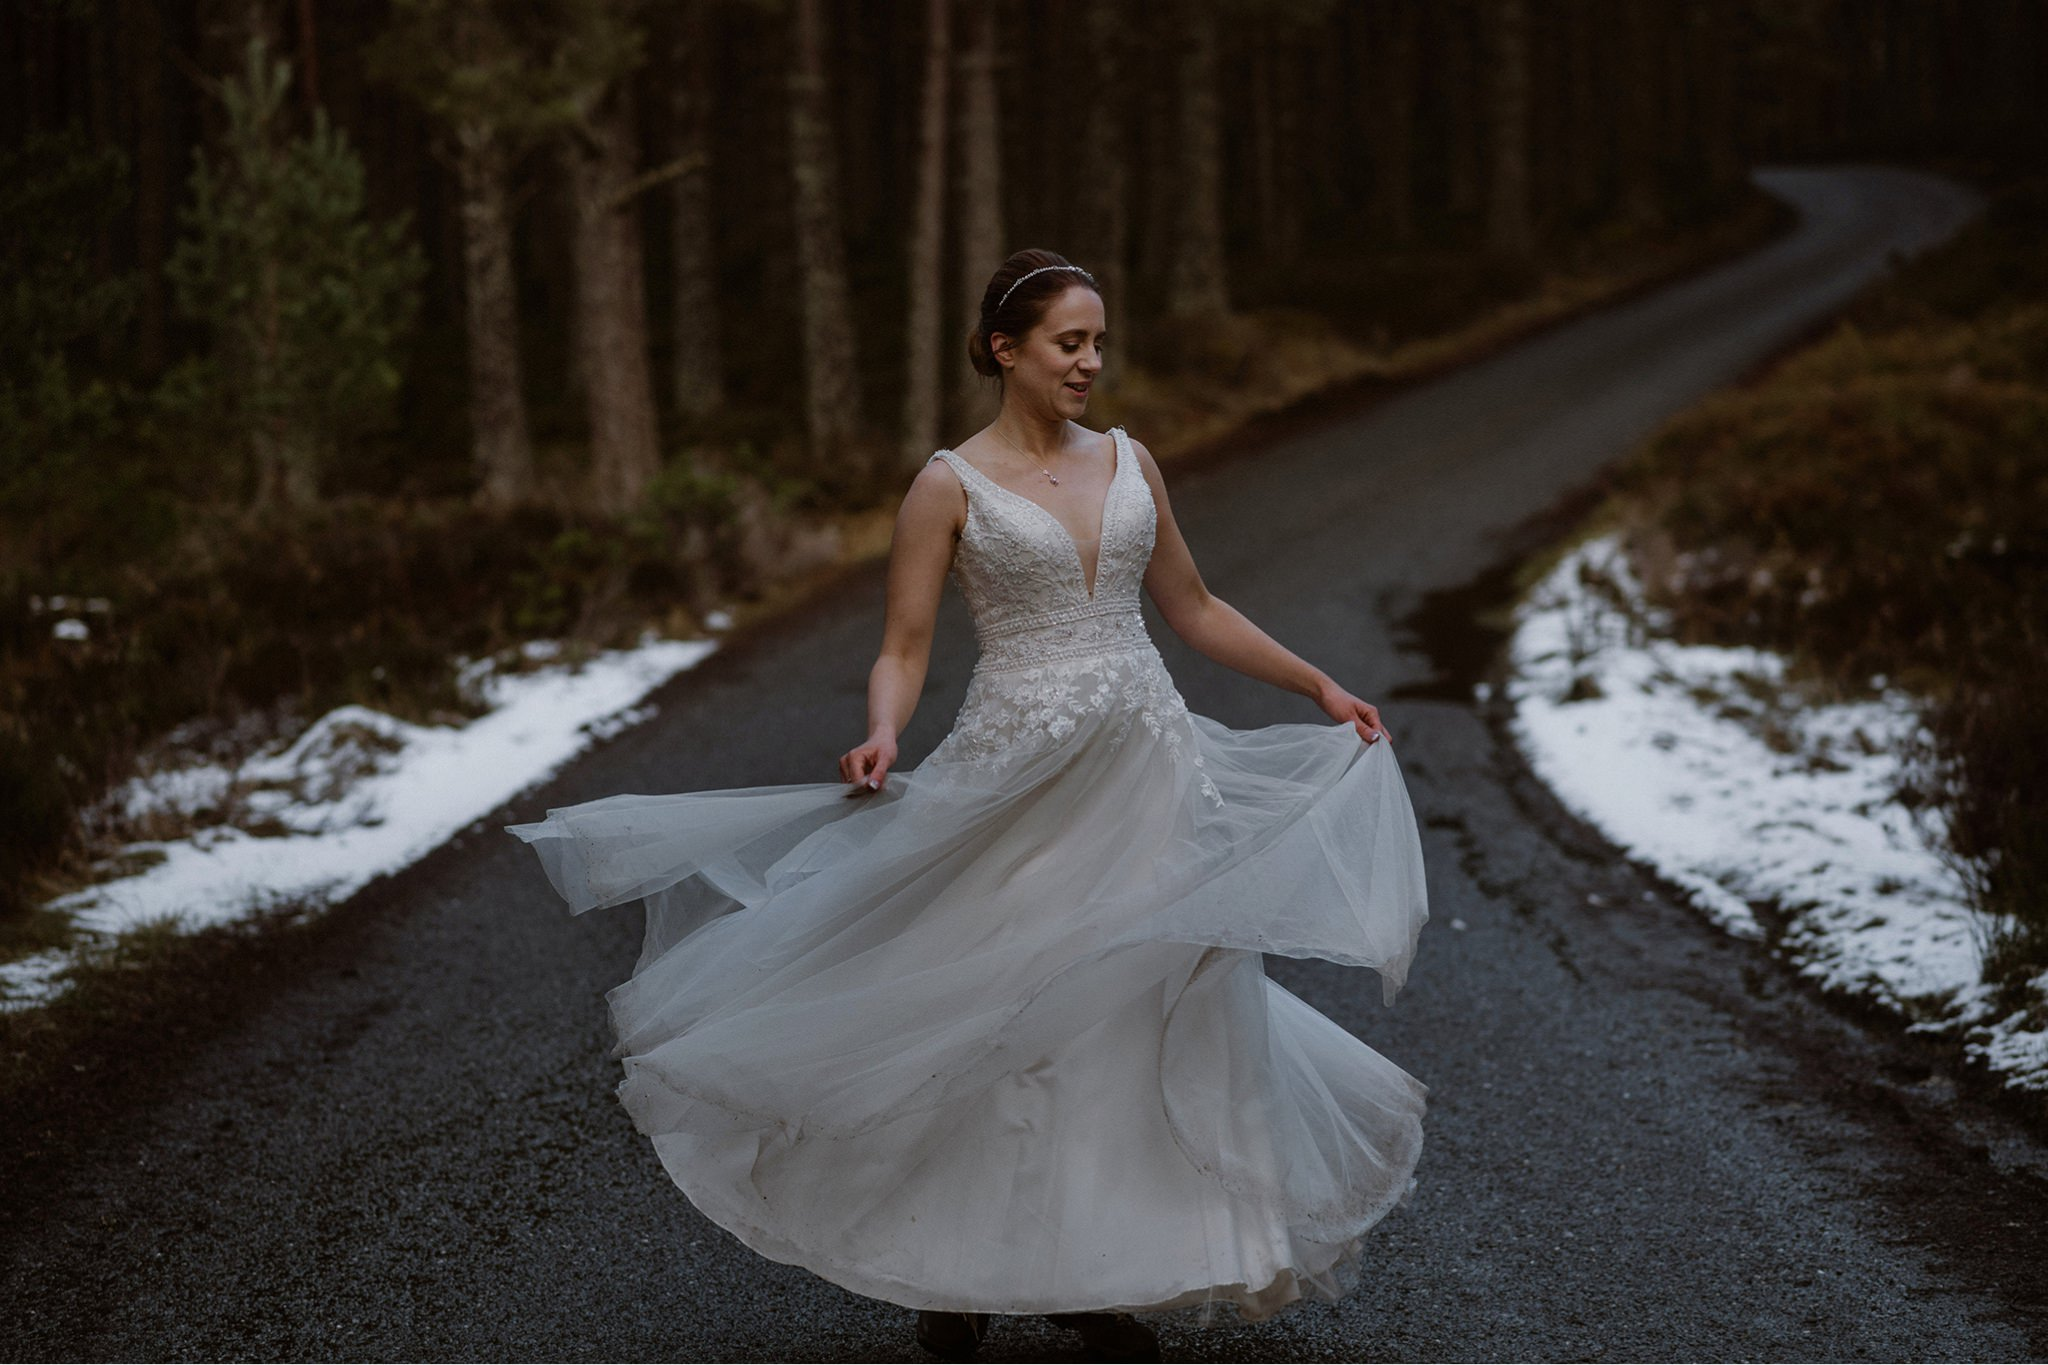 Wedding dress swirl in the Cairngorms forest